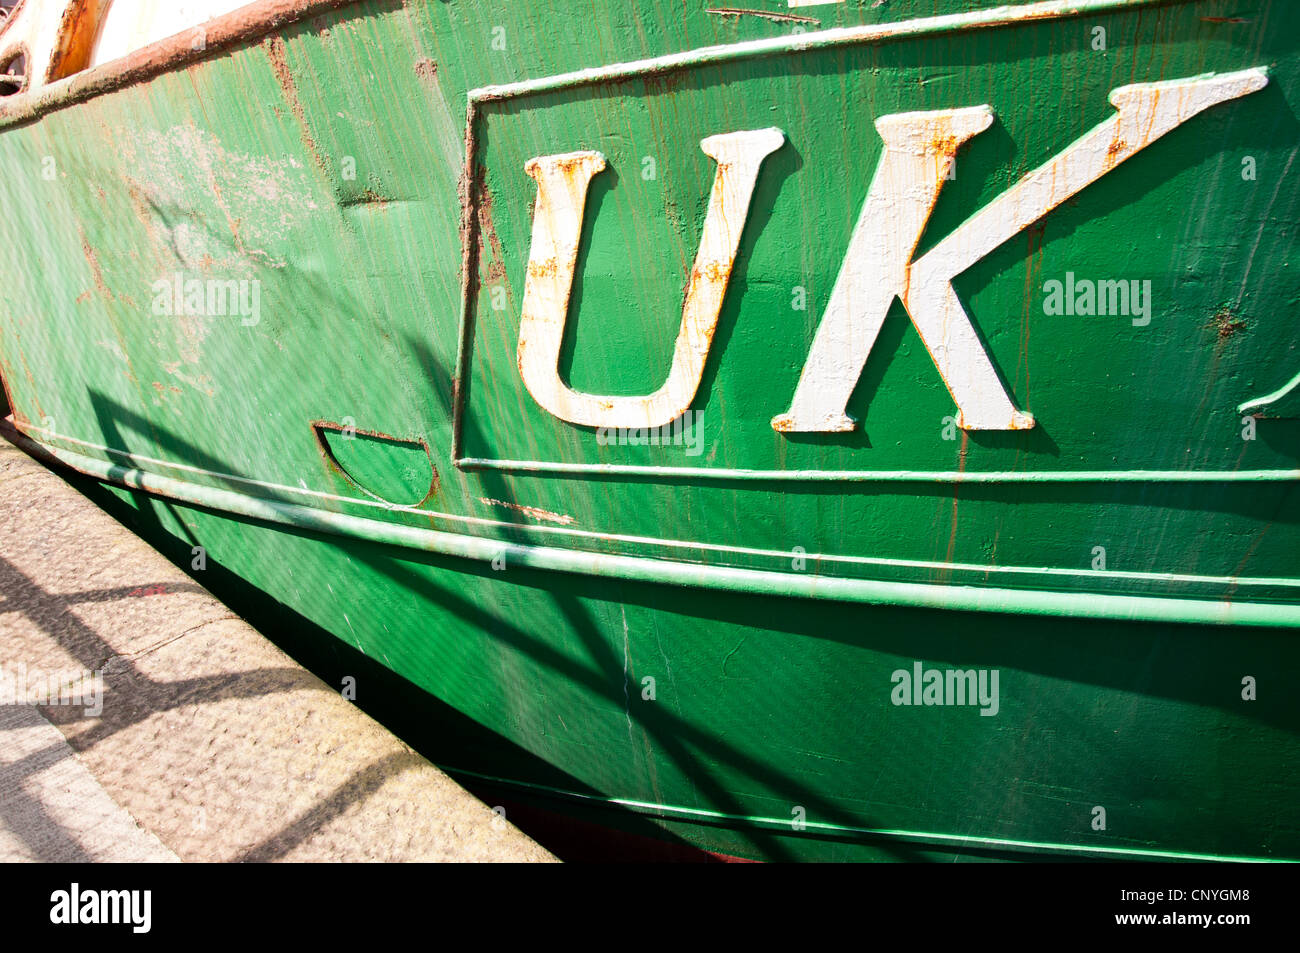 UK fishing industry. Vessel berthed at port. - Stock Image